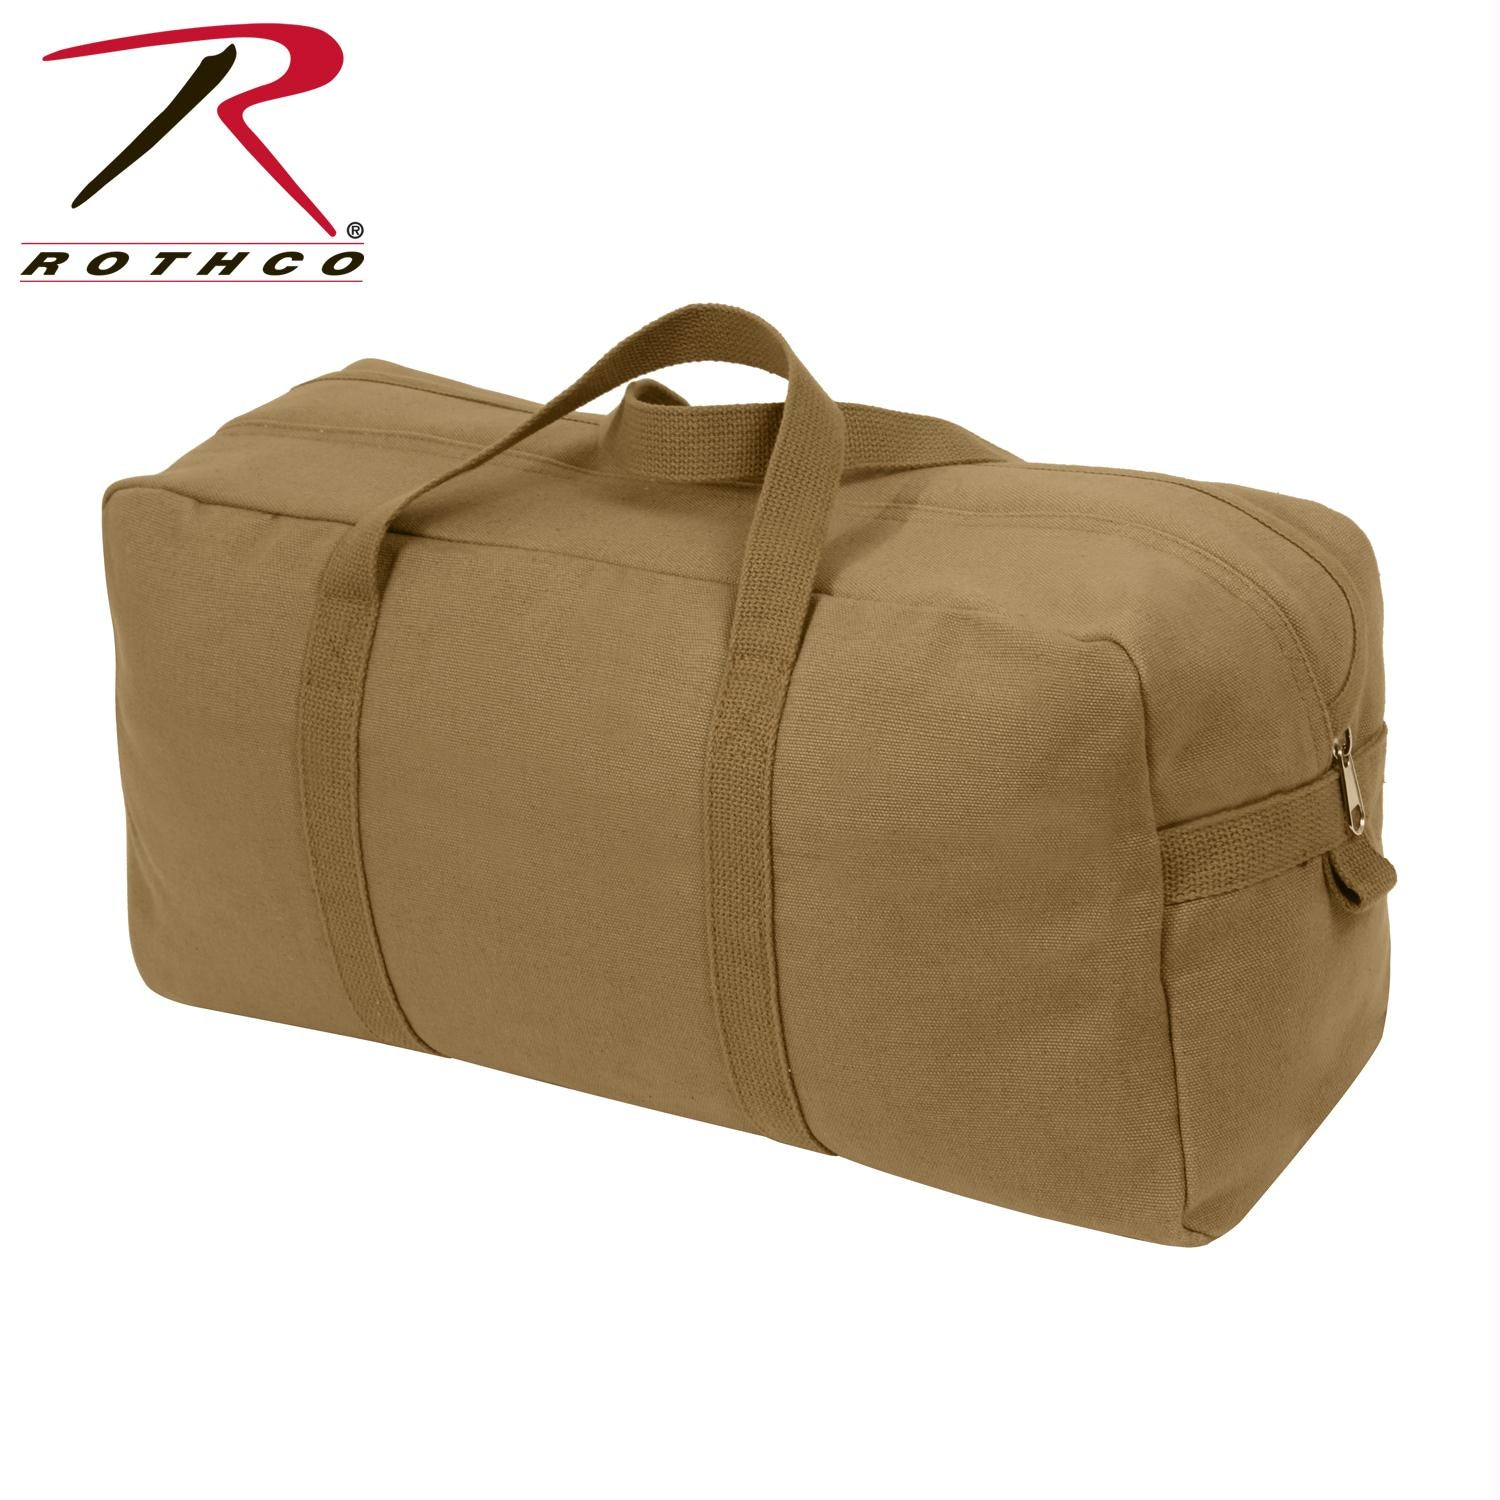 Rothco Canvas Tanker Style Tool Bag - Coyote Brown